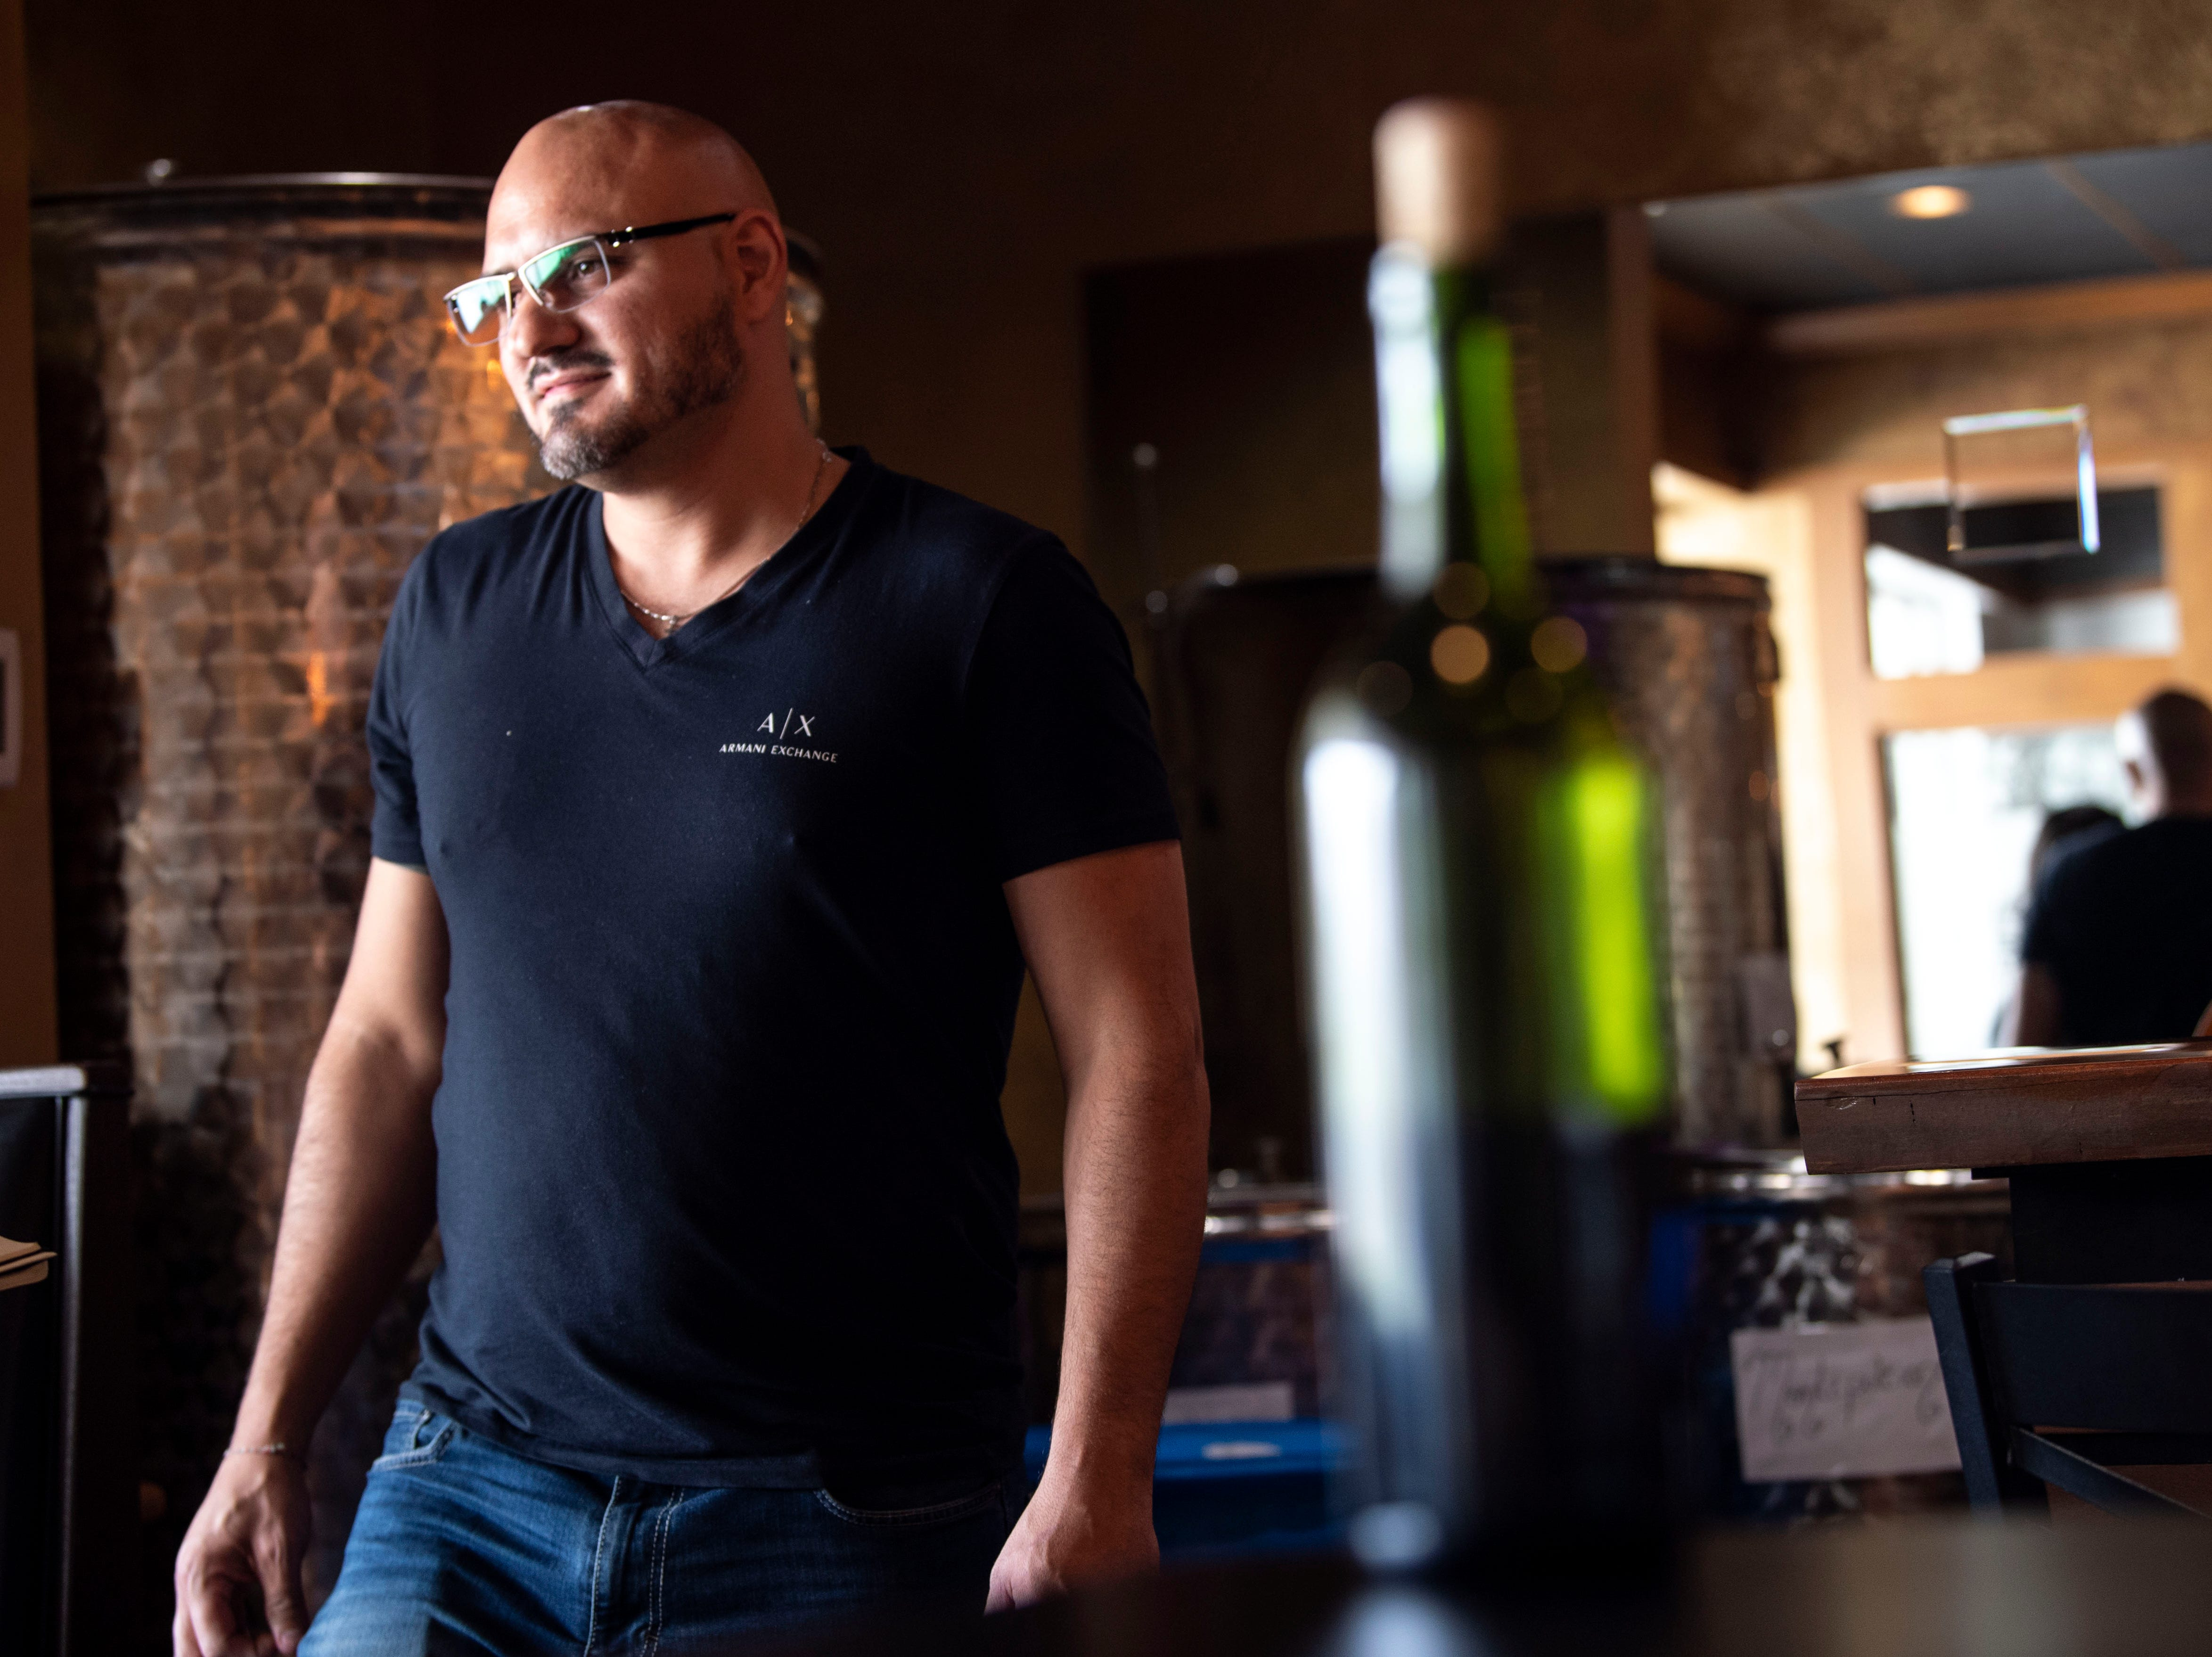 Vito Serradella, co-owner of the Wood Fire Italian Grill started making wine with his grandfather in Italy. It was a passion for his family, and now he brings that passion to his restaurant, Wednesday, Oct. 10, 2018. The restaurant, which opened at the beginning of this year, has added on a bar, where they make their own wine to serve.